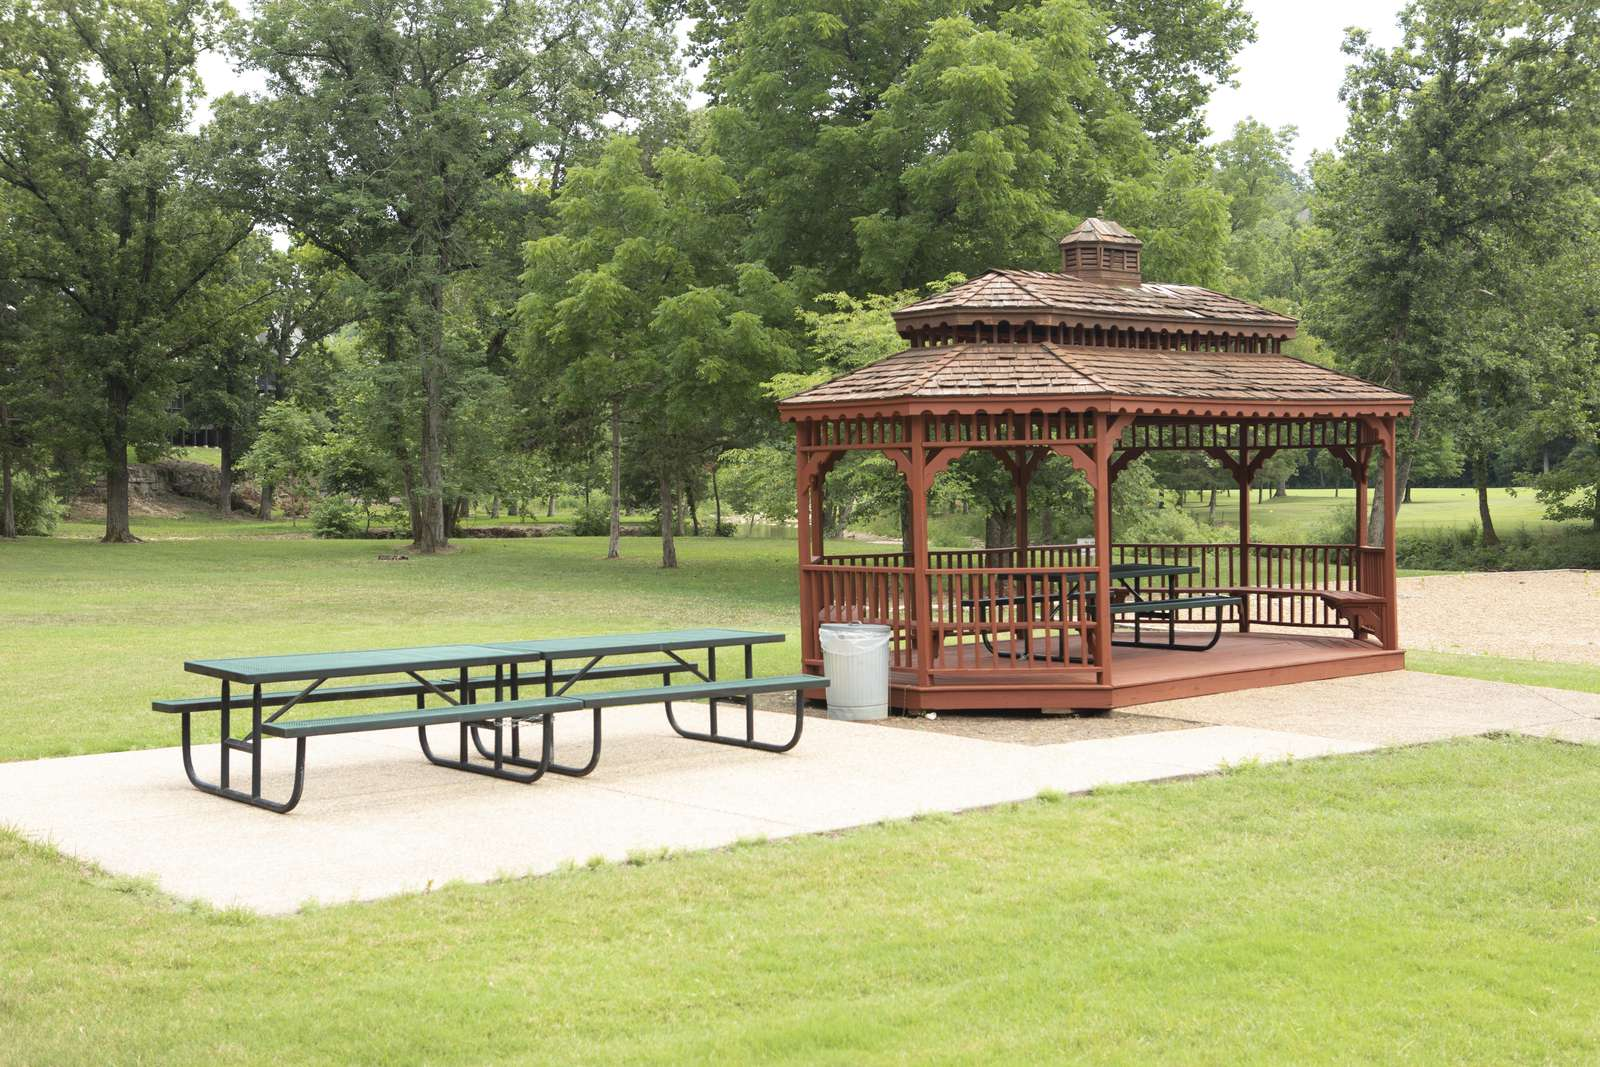 Quiet, relaxing park is good for picnics, and gentle walks along the creek.